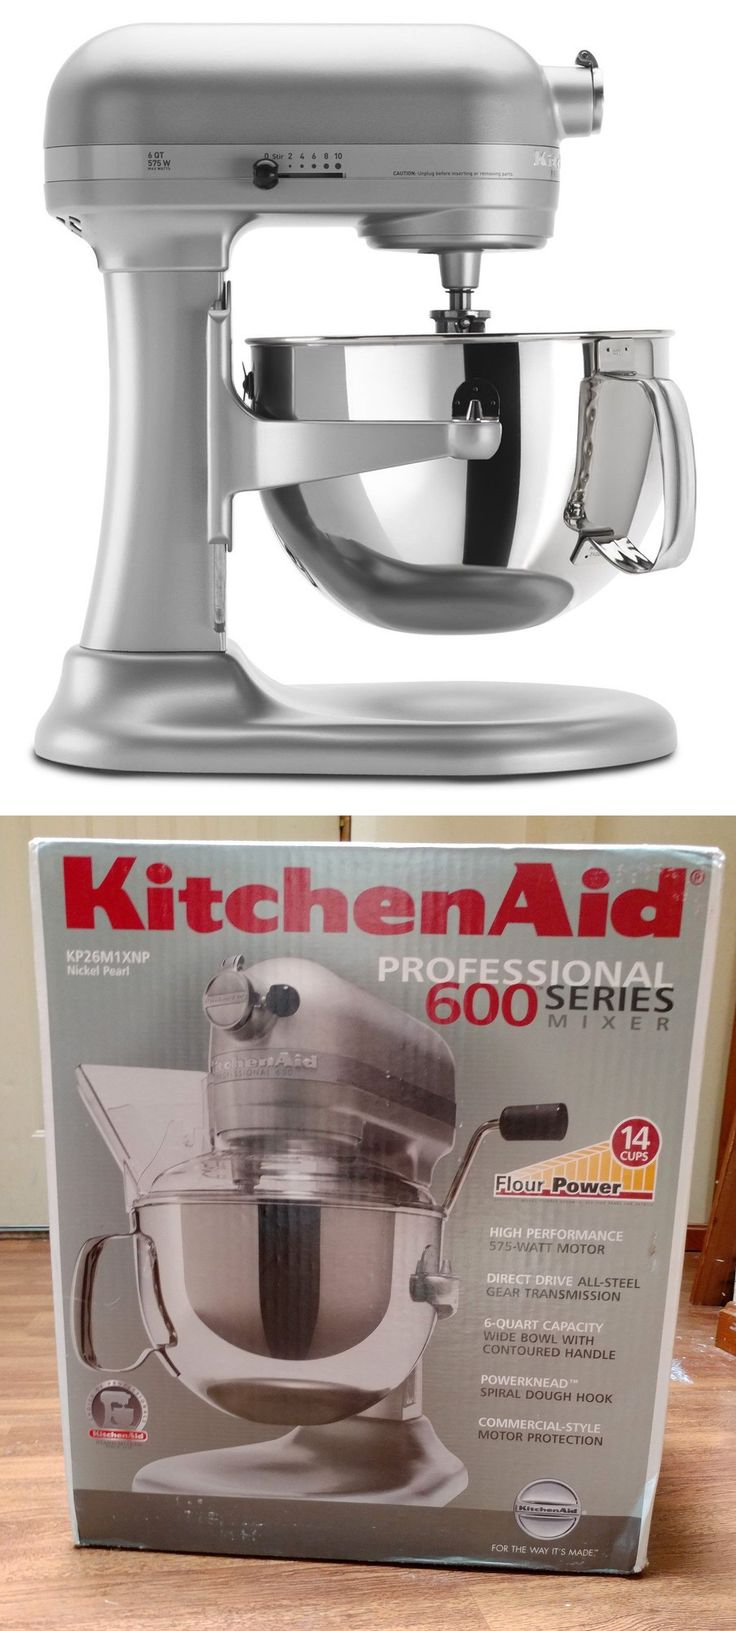 Small Kitchen Appliances: Kitchenaid 6 Quart Professional 600 Mixer Nickel Pearl New In Box 575 Watt -> BUY IT NOW ONLY: $275 on eBay!